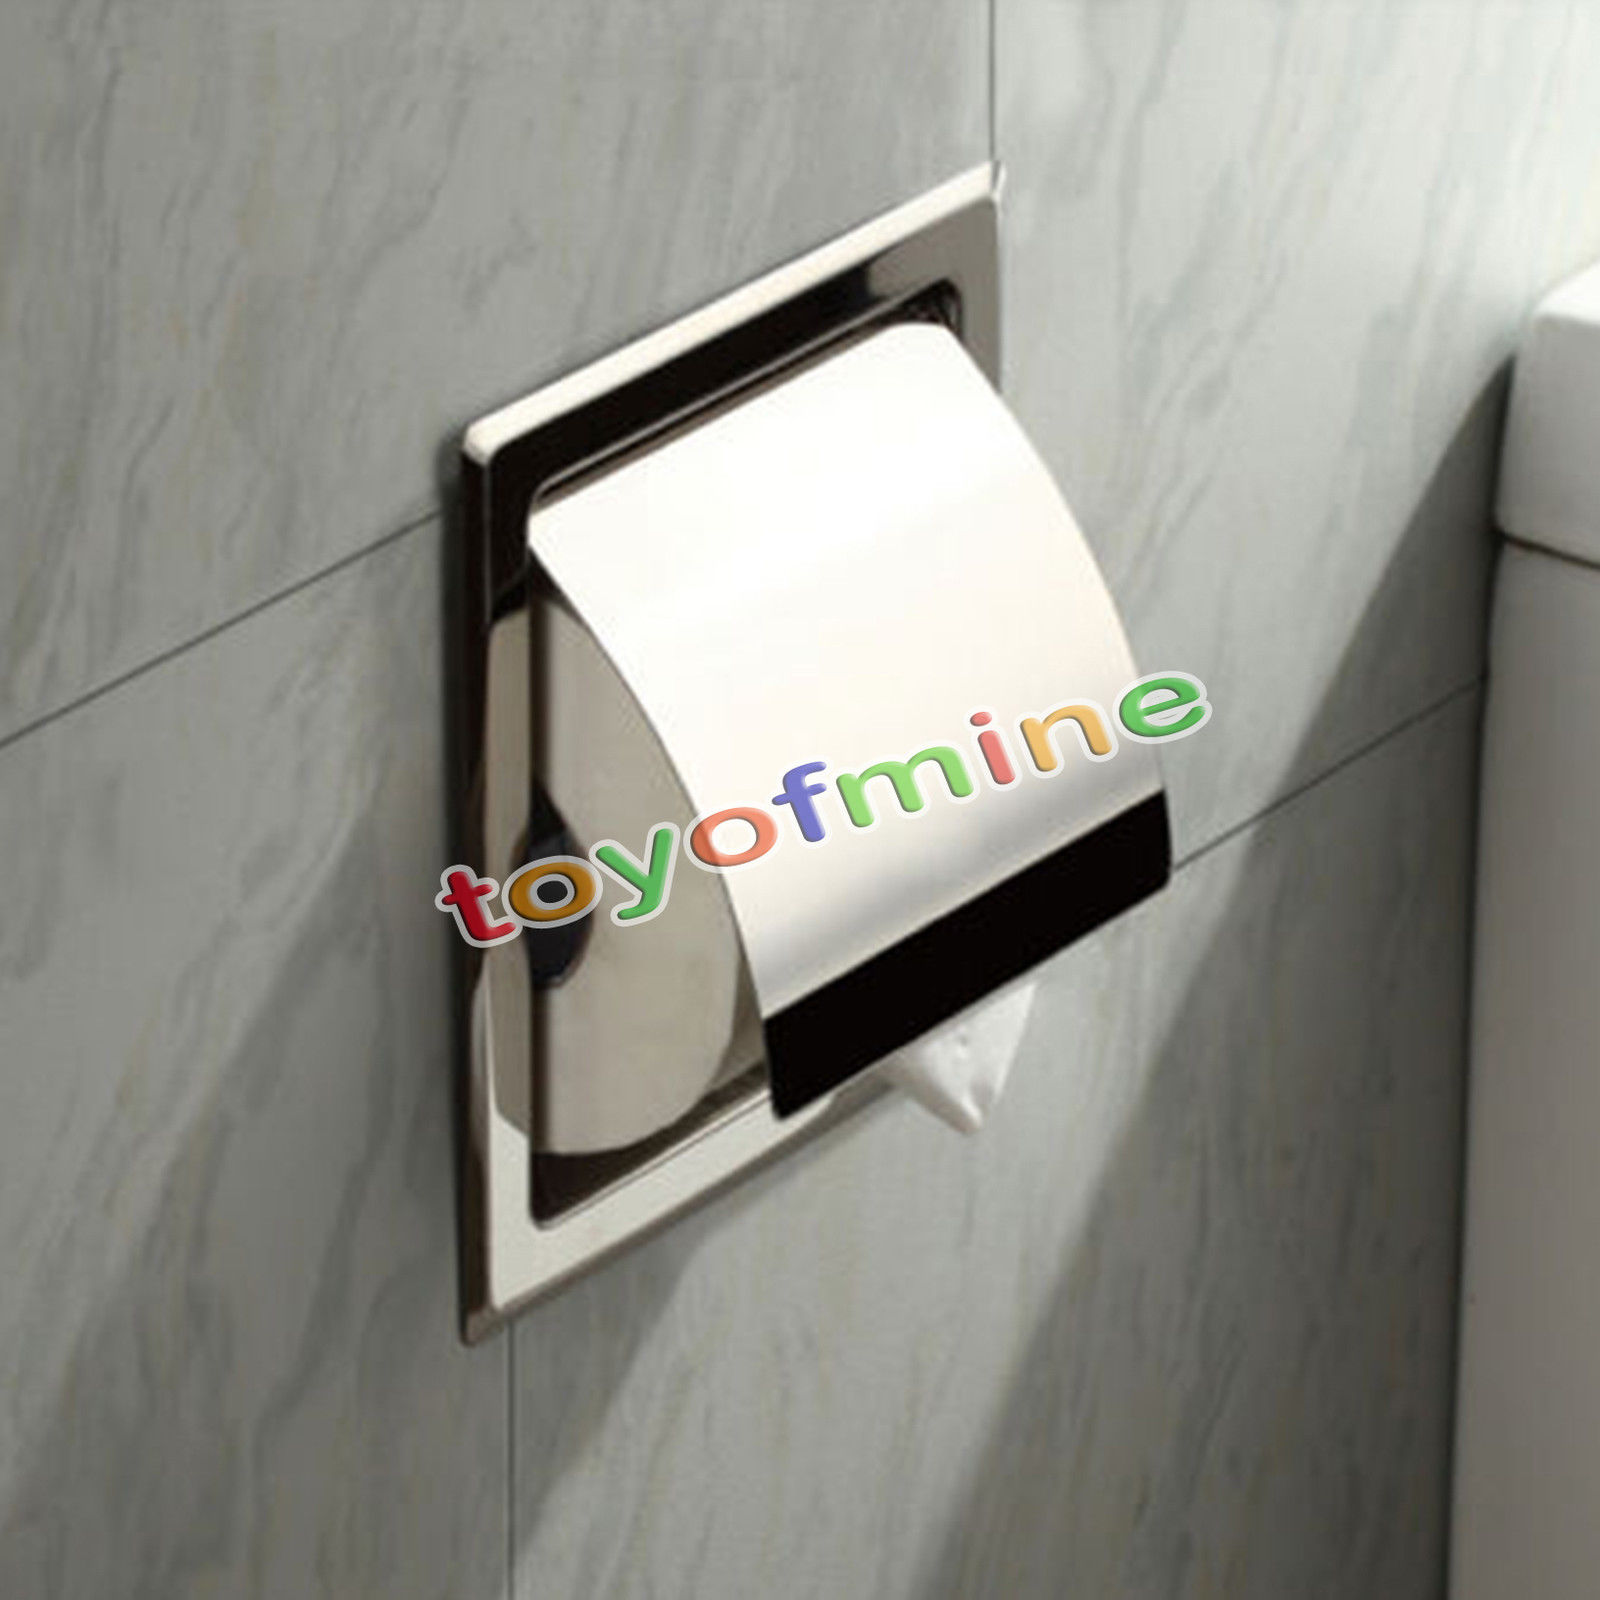 In Wall Toilet Paper Holder compare prices on embedded paper holder- online shopping/buy low